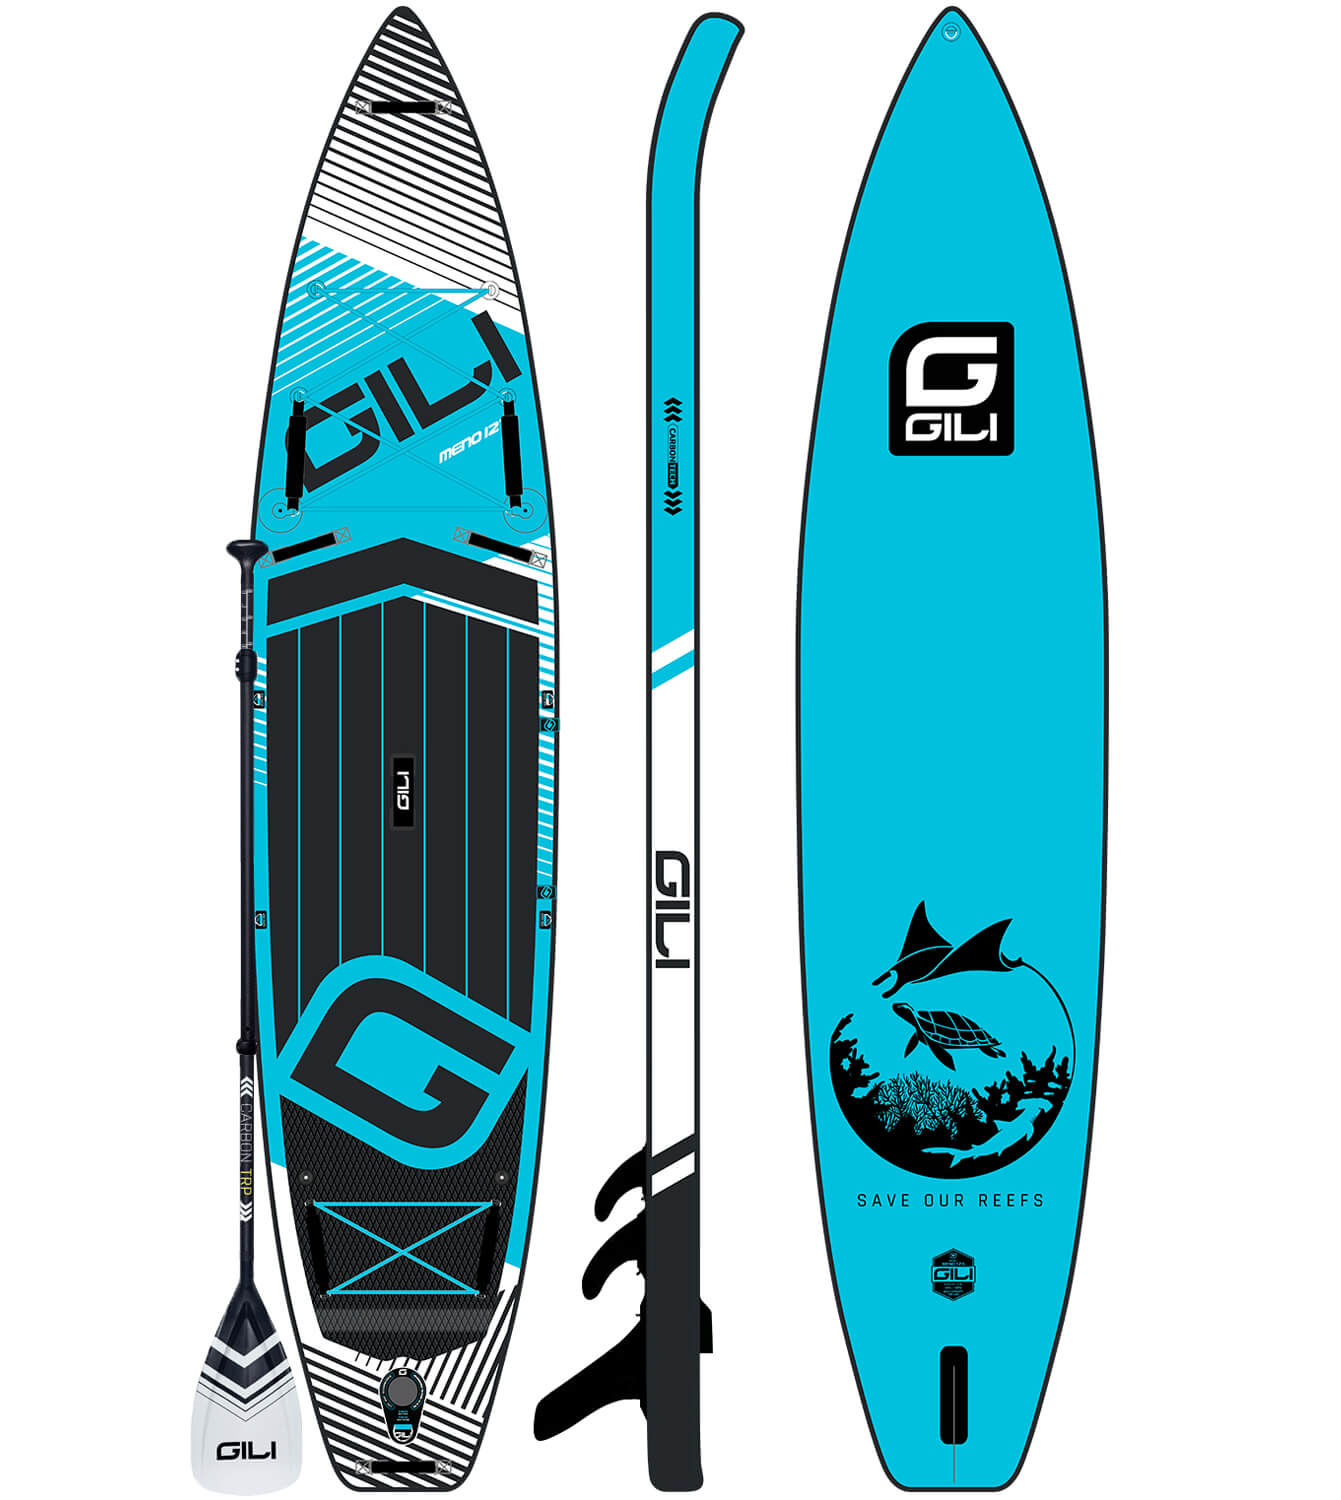 GILI Meno 12'6 Touring - Runner Up for Best Touring Board